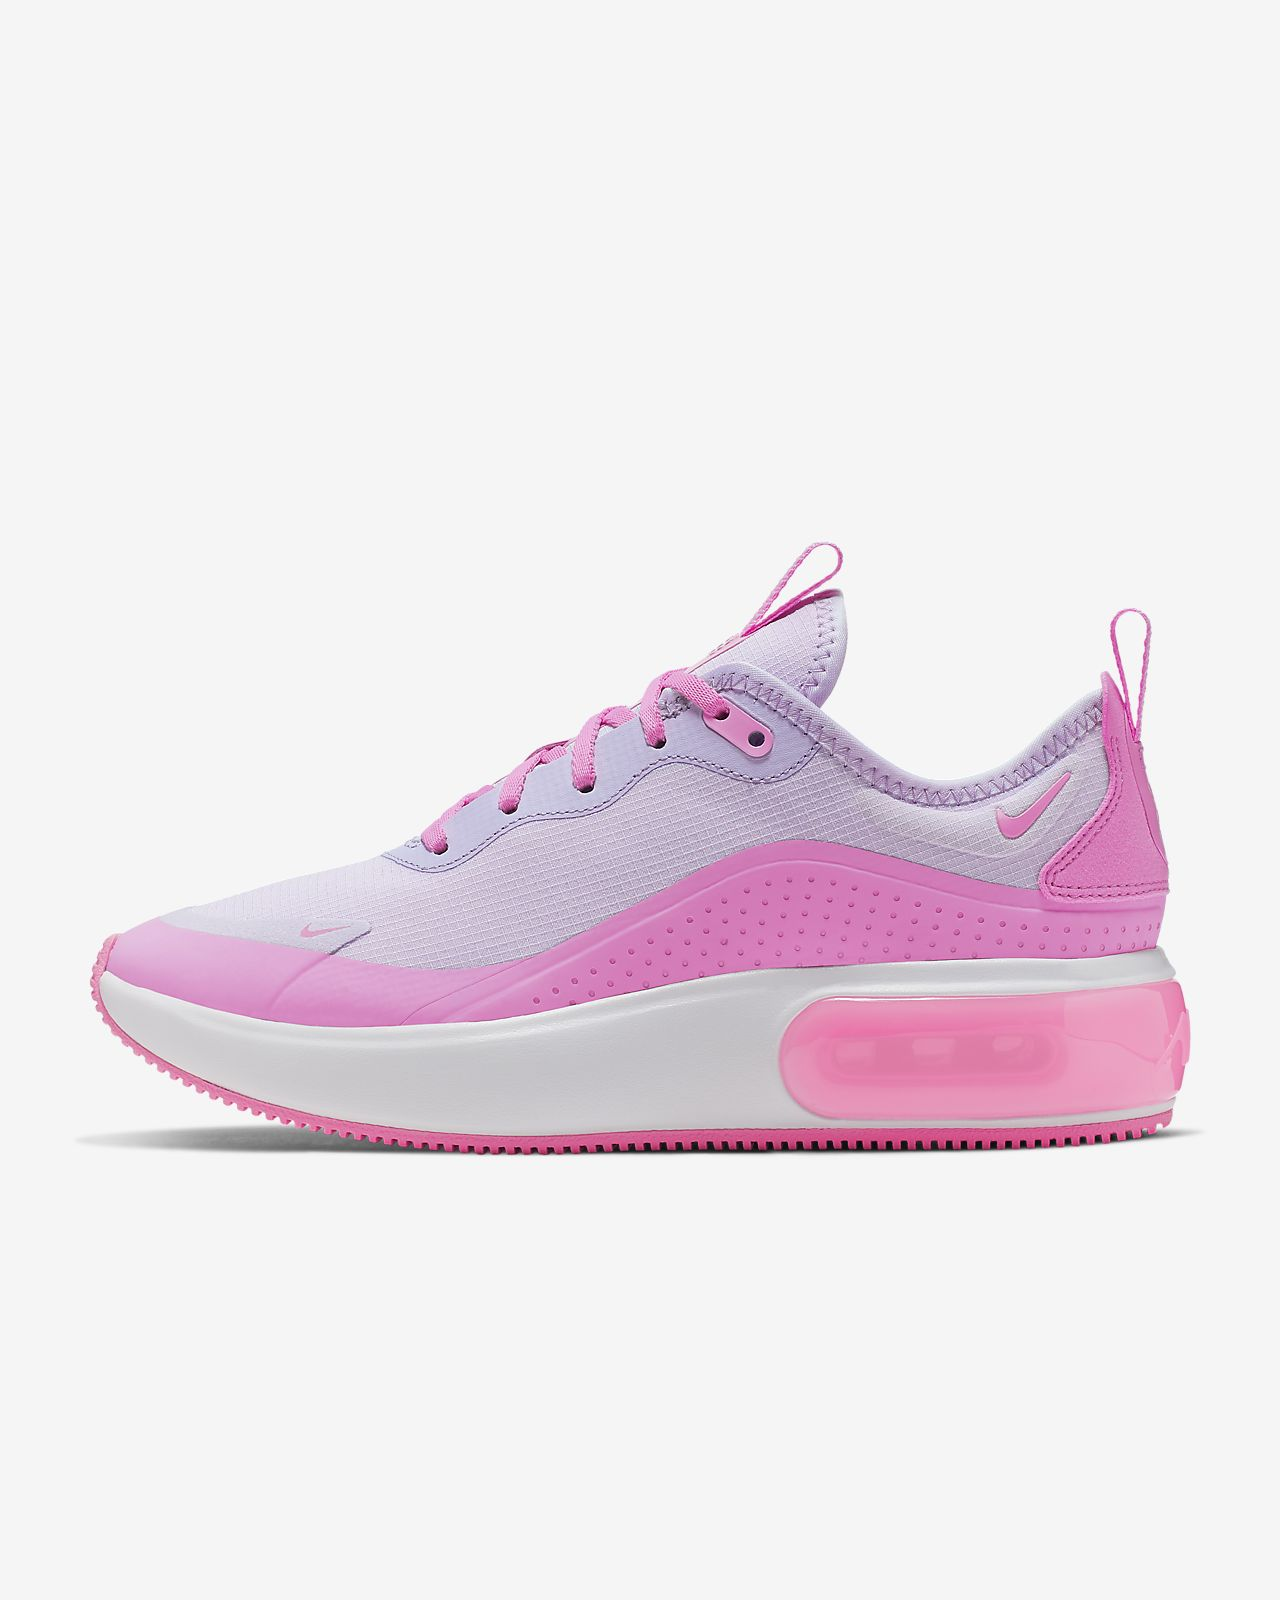 Nike Air Max Dia Shoe